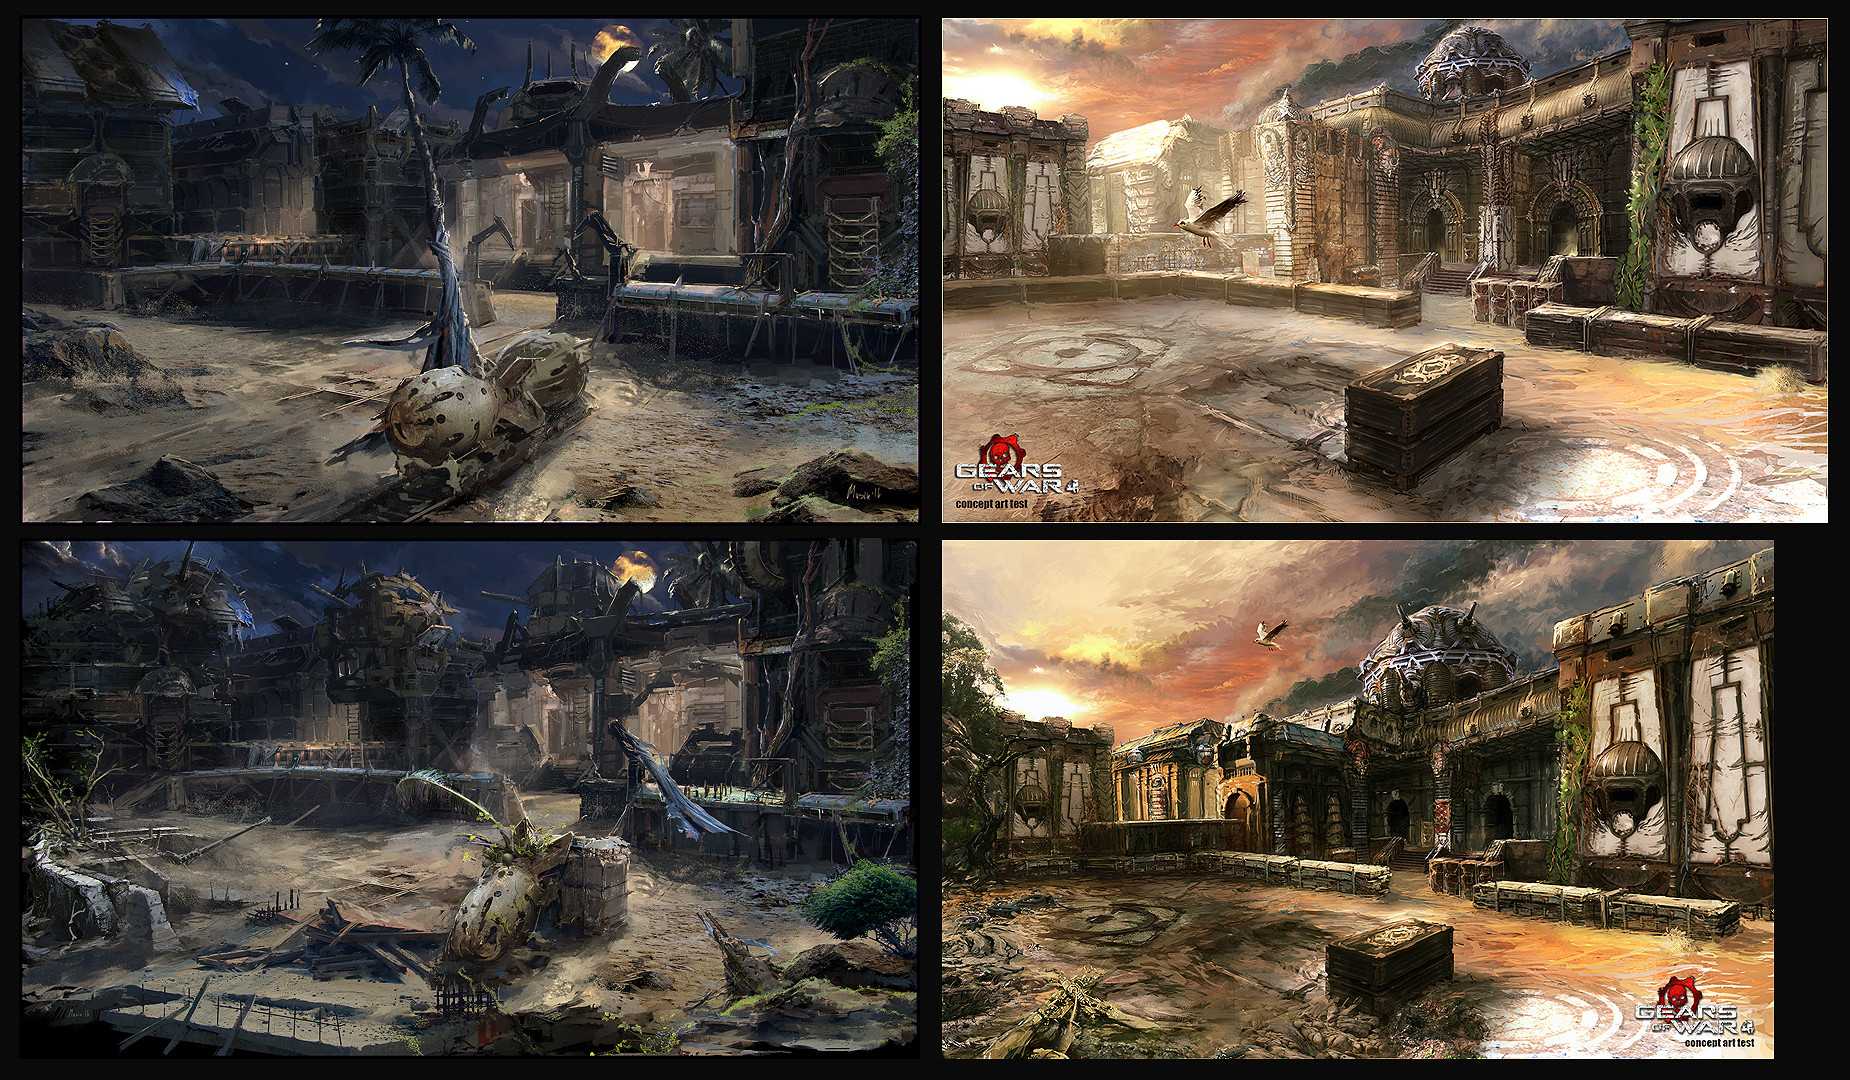 Sergey musin pcf sketches